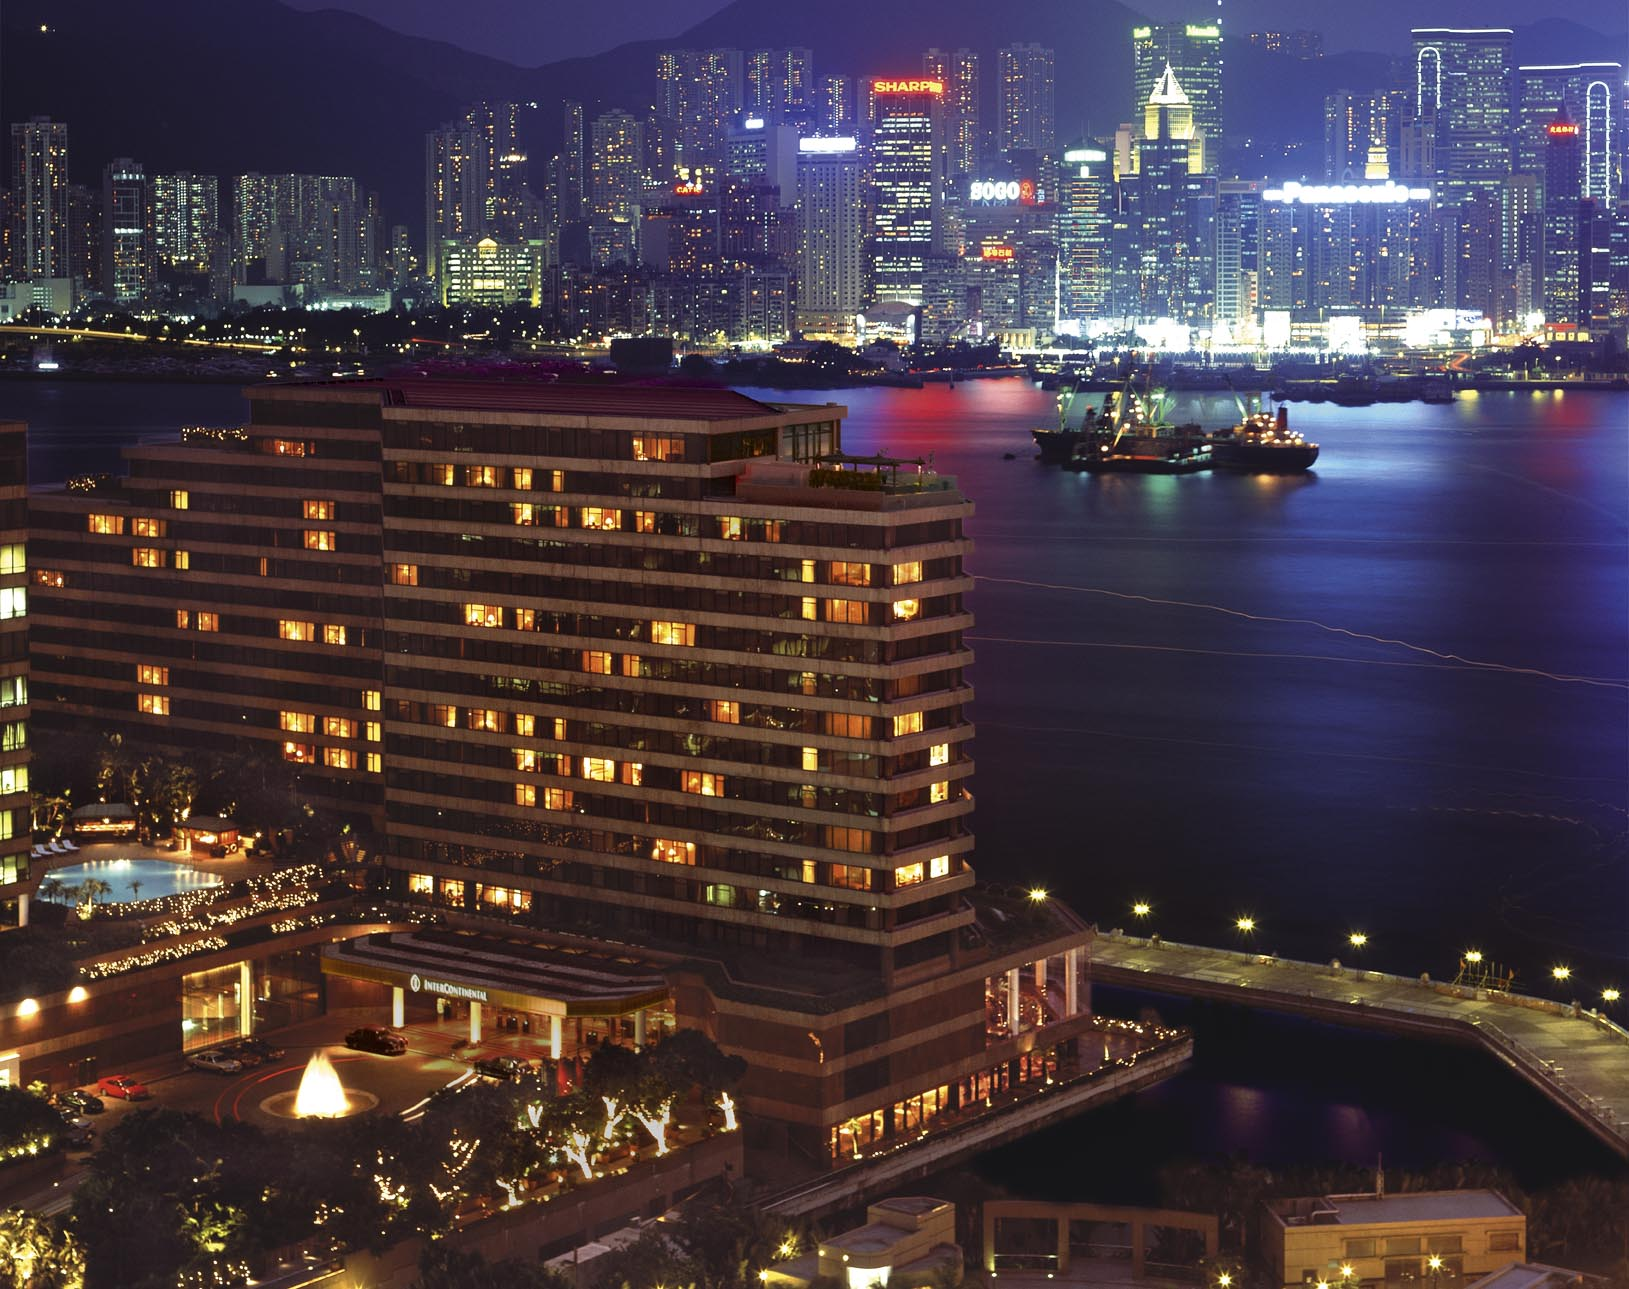 InterContinental_Hong_Kong_Exterior_%28N